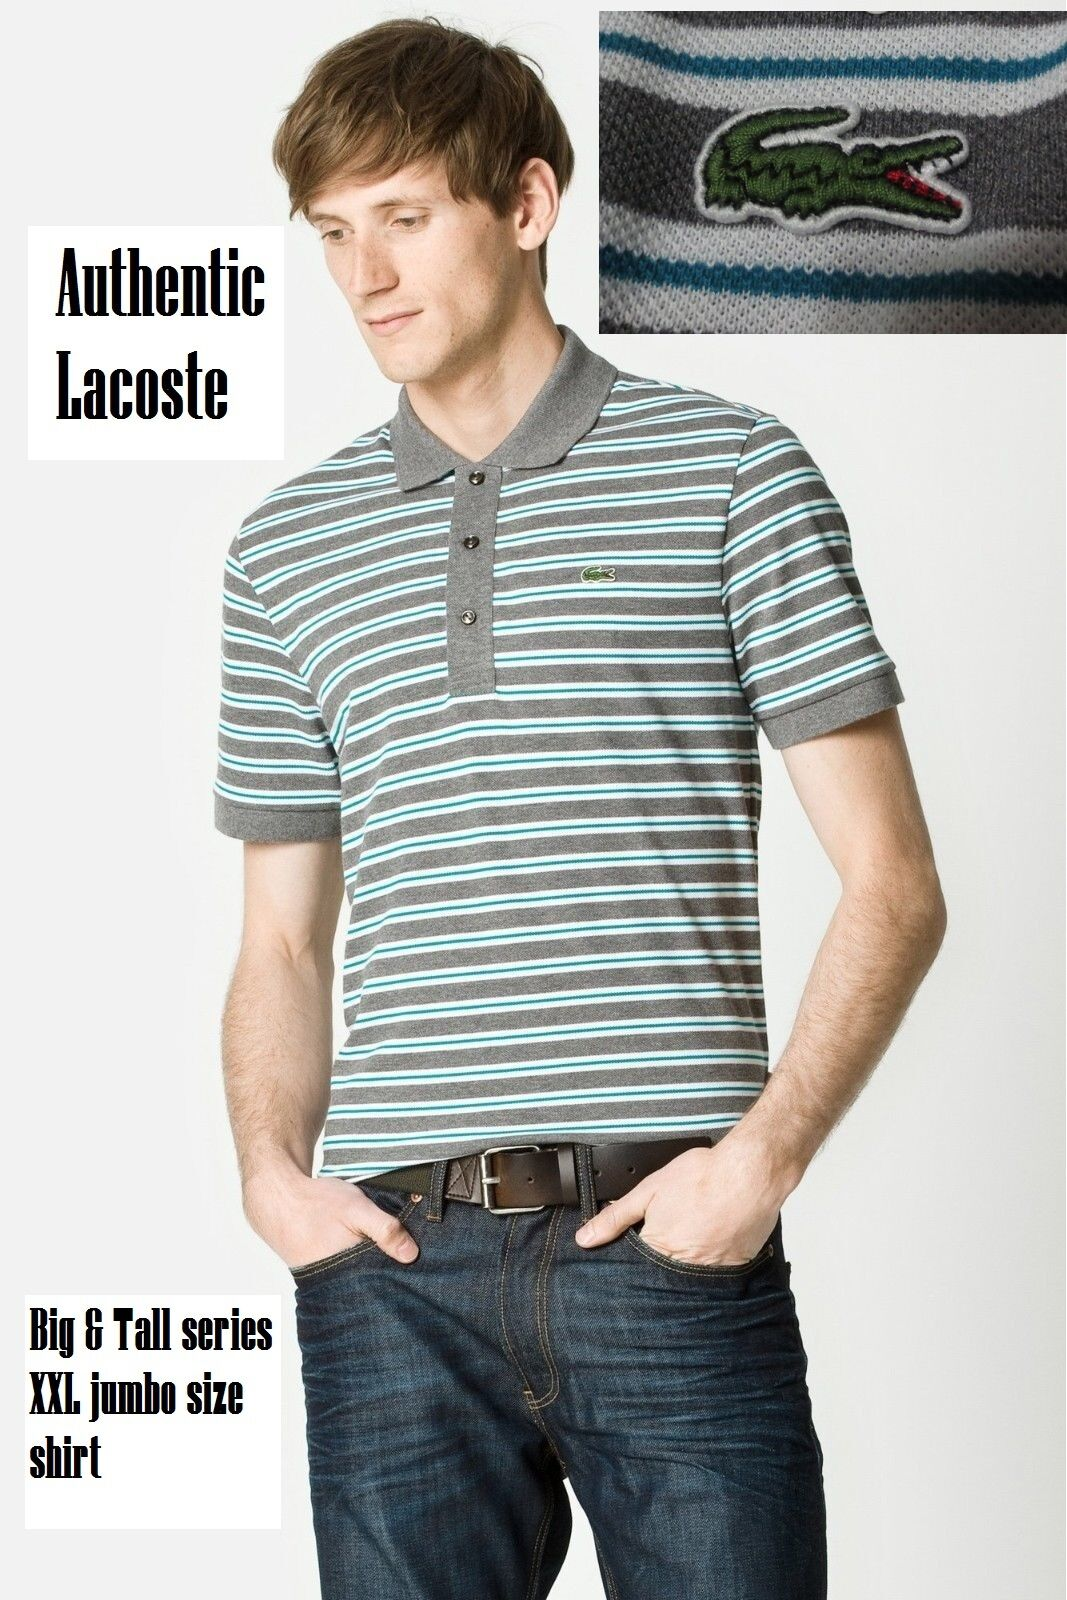 a6c28ab98d Lacoste Men's Big & Tall Fit 2xl Short Sleeve Stone Gray Stripe Pique Polo